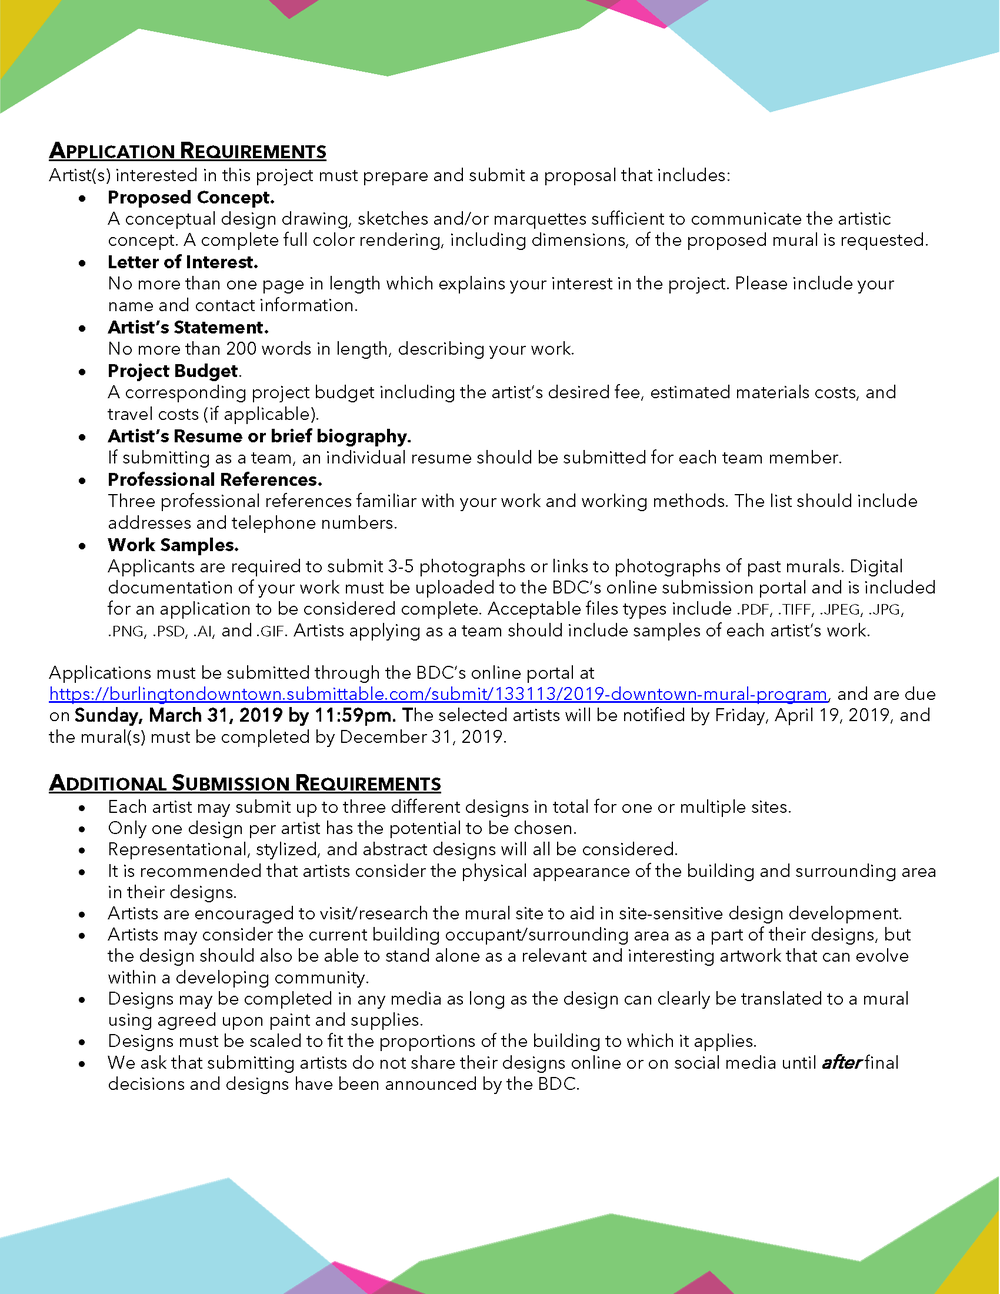 BDC CALL-FOR-ARTISTS RFP - FINAL_Page_4.png